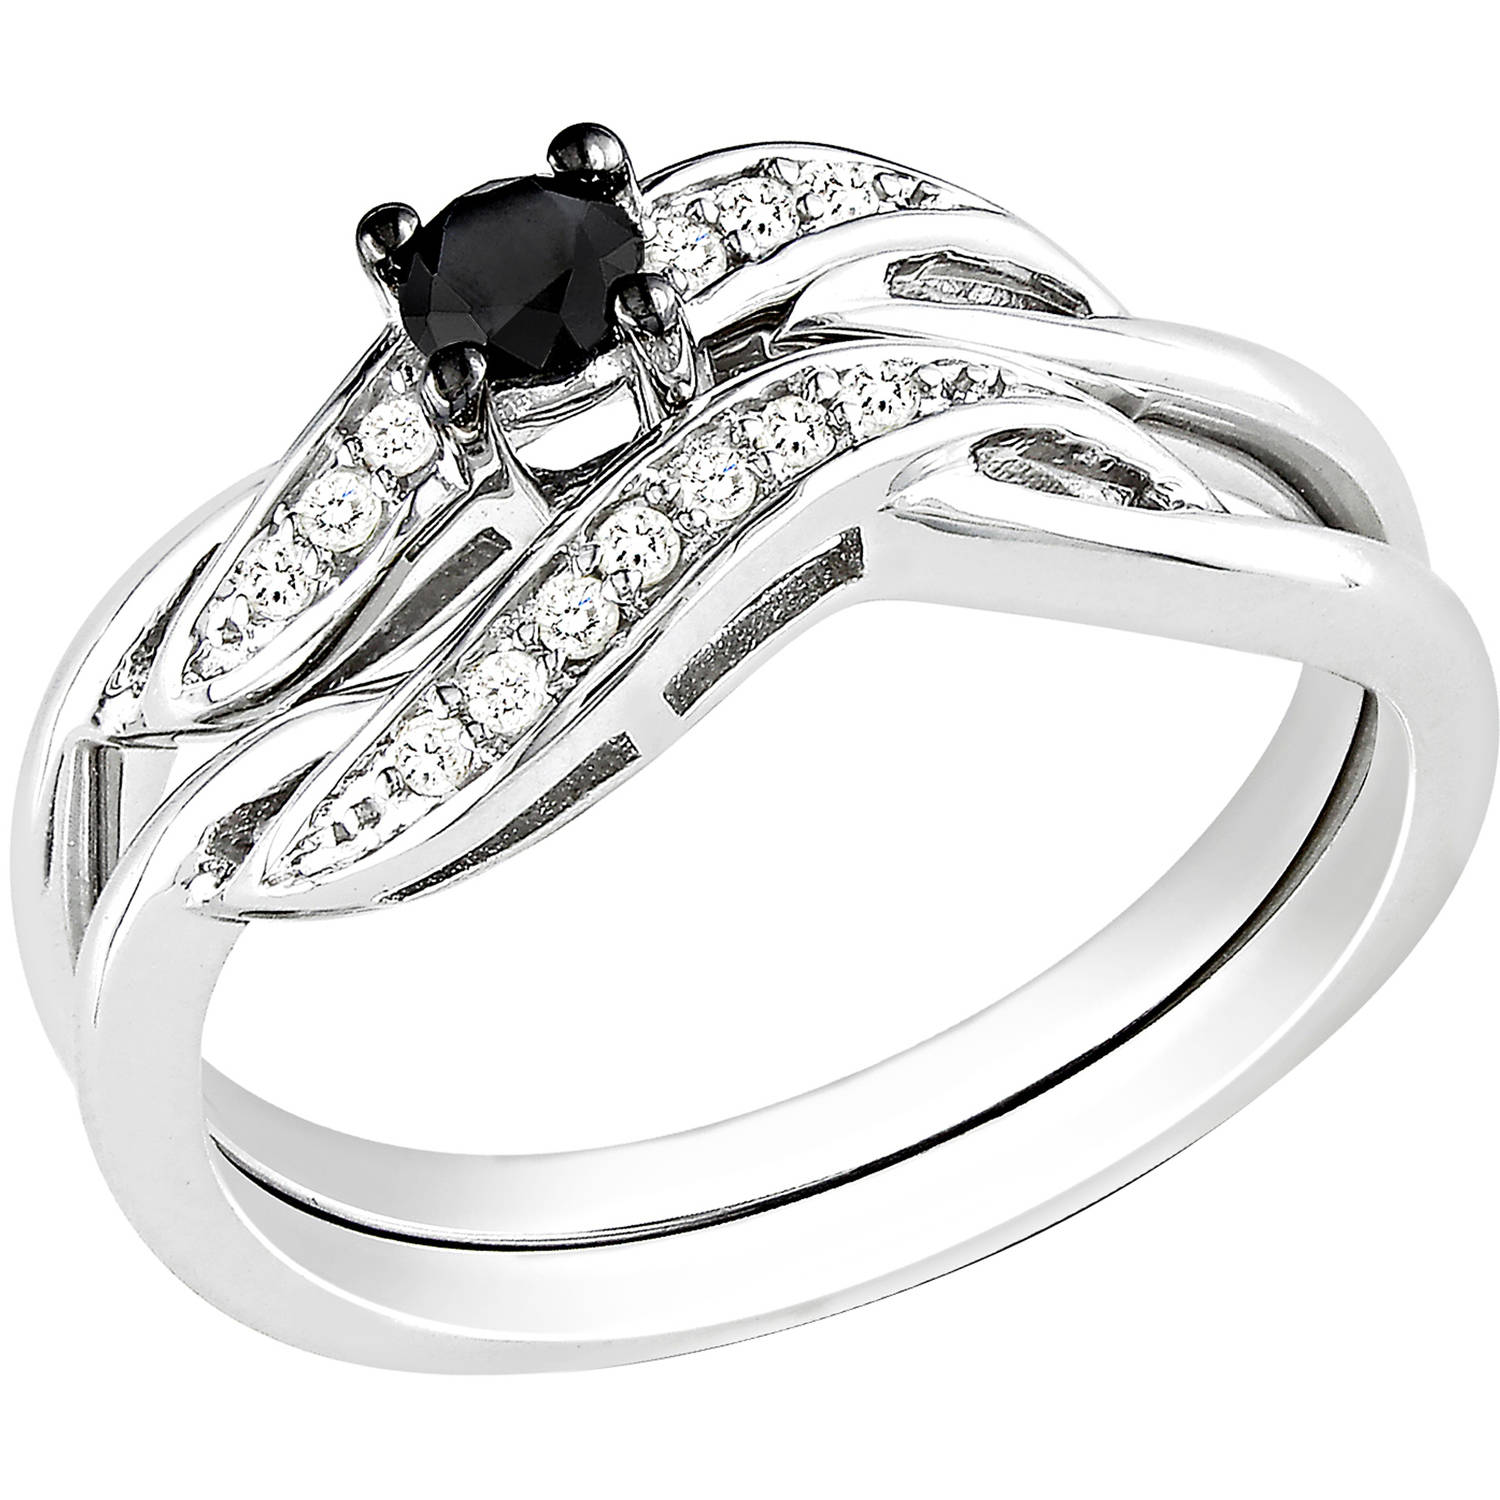 Asteria 1 4 Carat T.W. Black and White Diamond Sterling Silver Bridal Ring Set by Generic